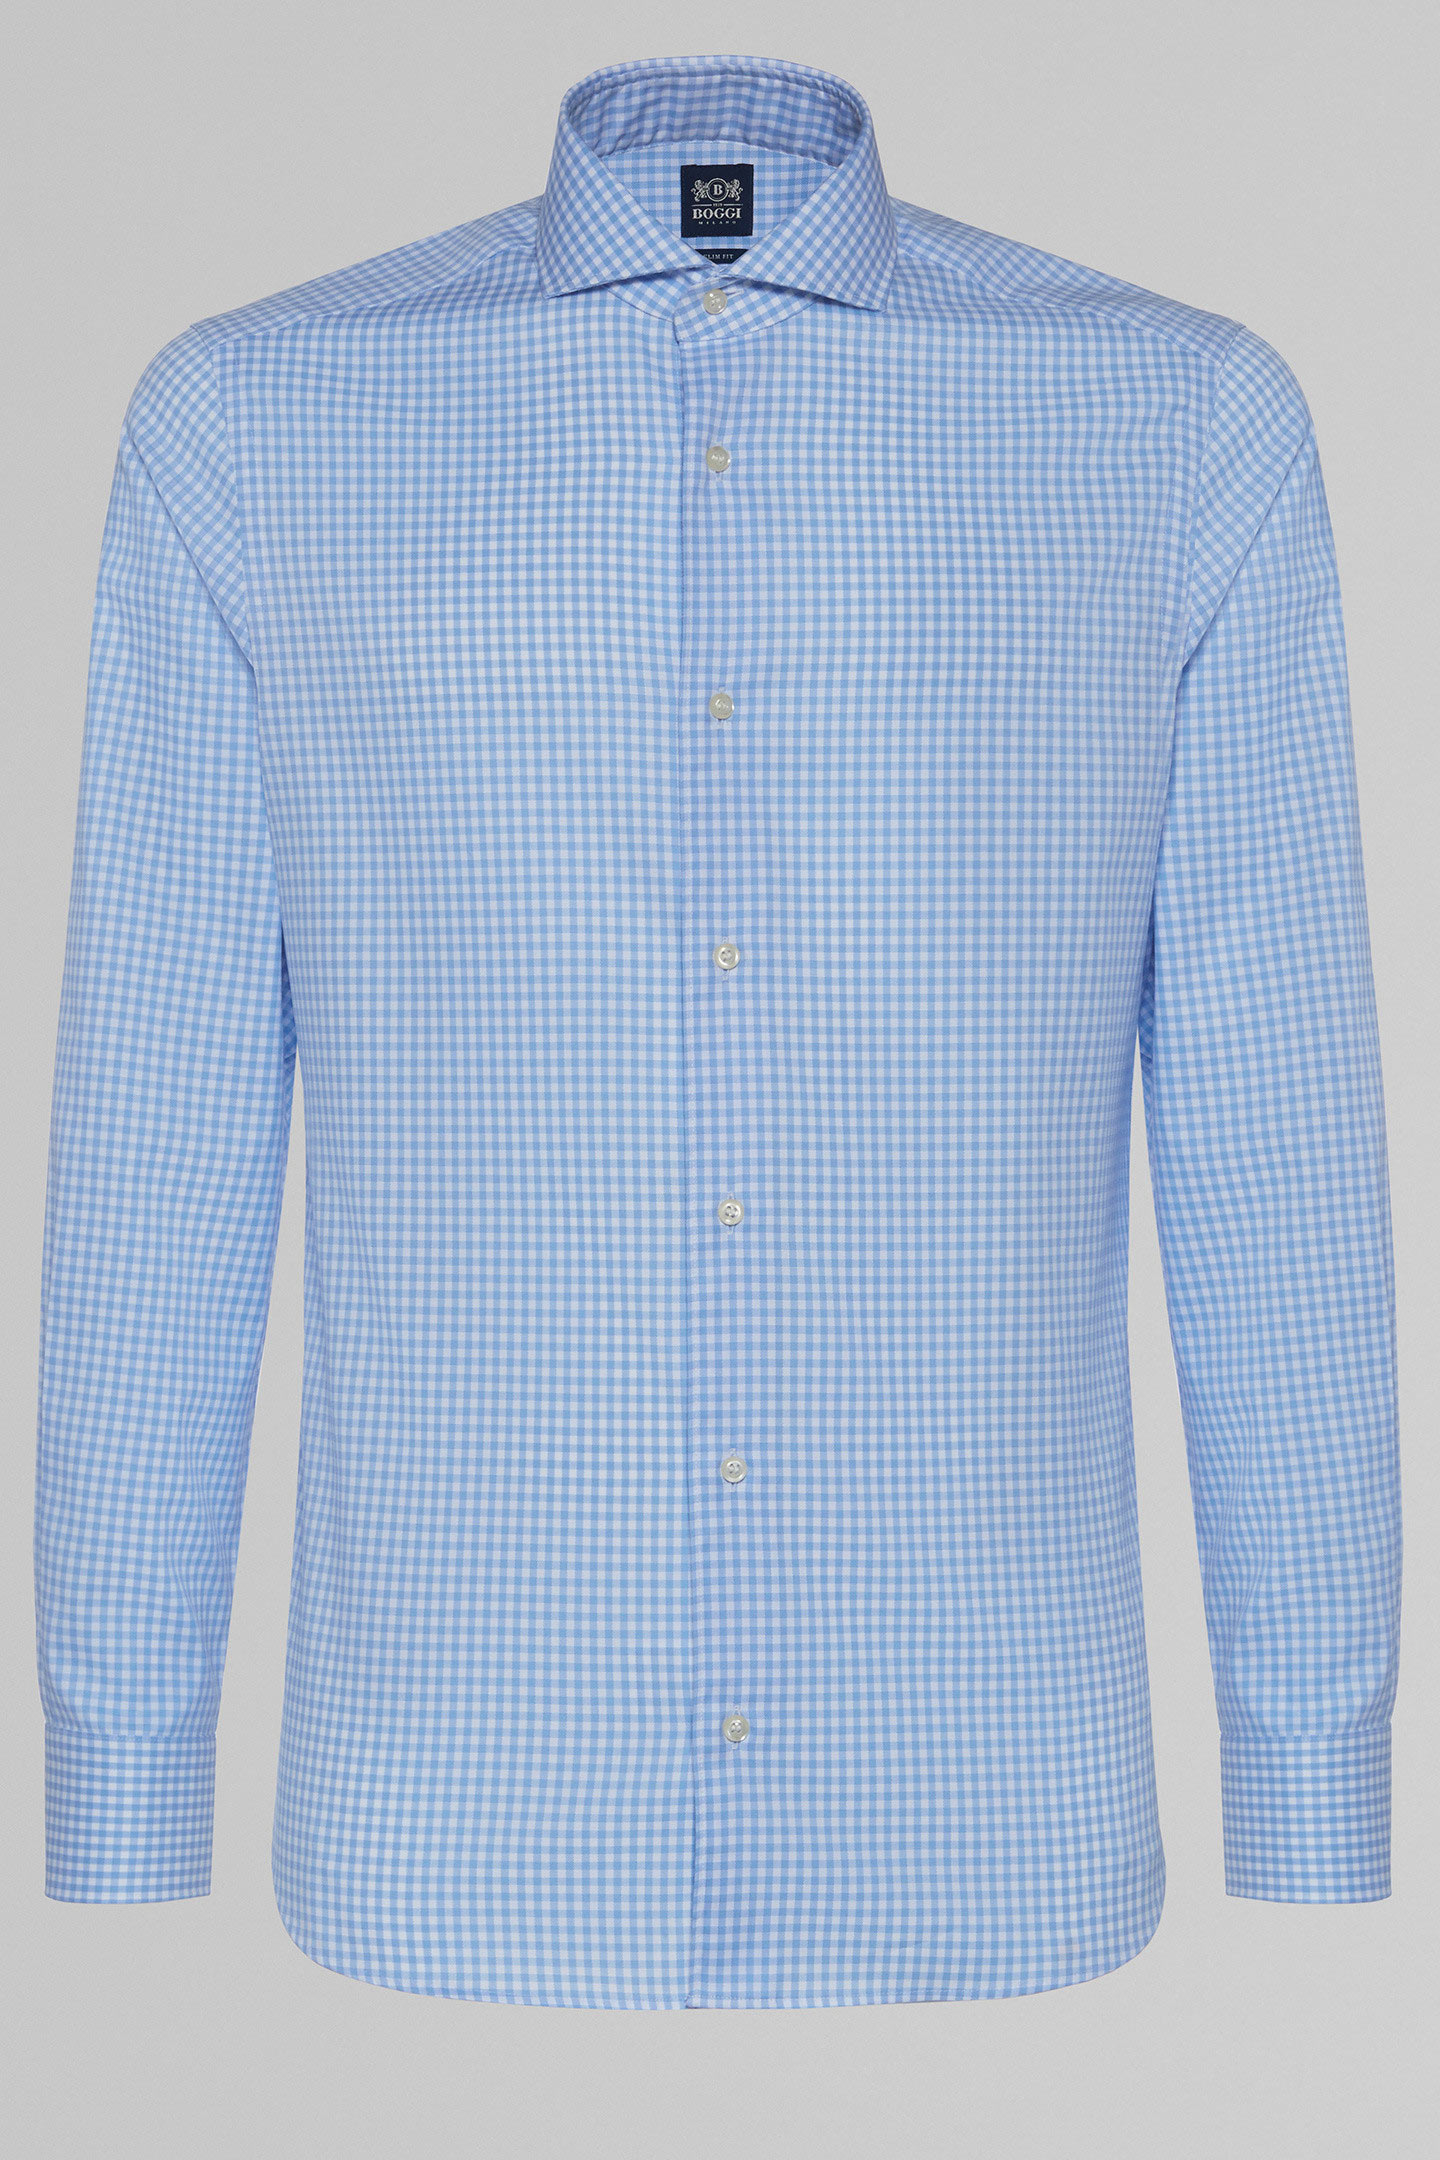 ... SLIM FIT SKY BLUE CHECKED SHIRT WITH NAPLES COLLAR, LIGHT BLUE, small ...